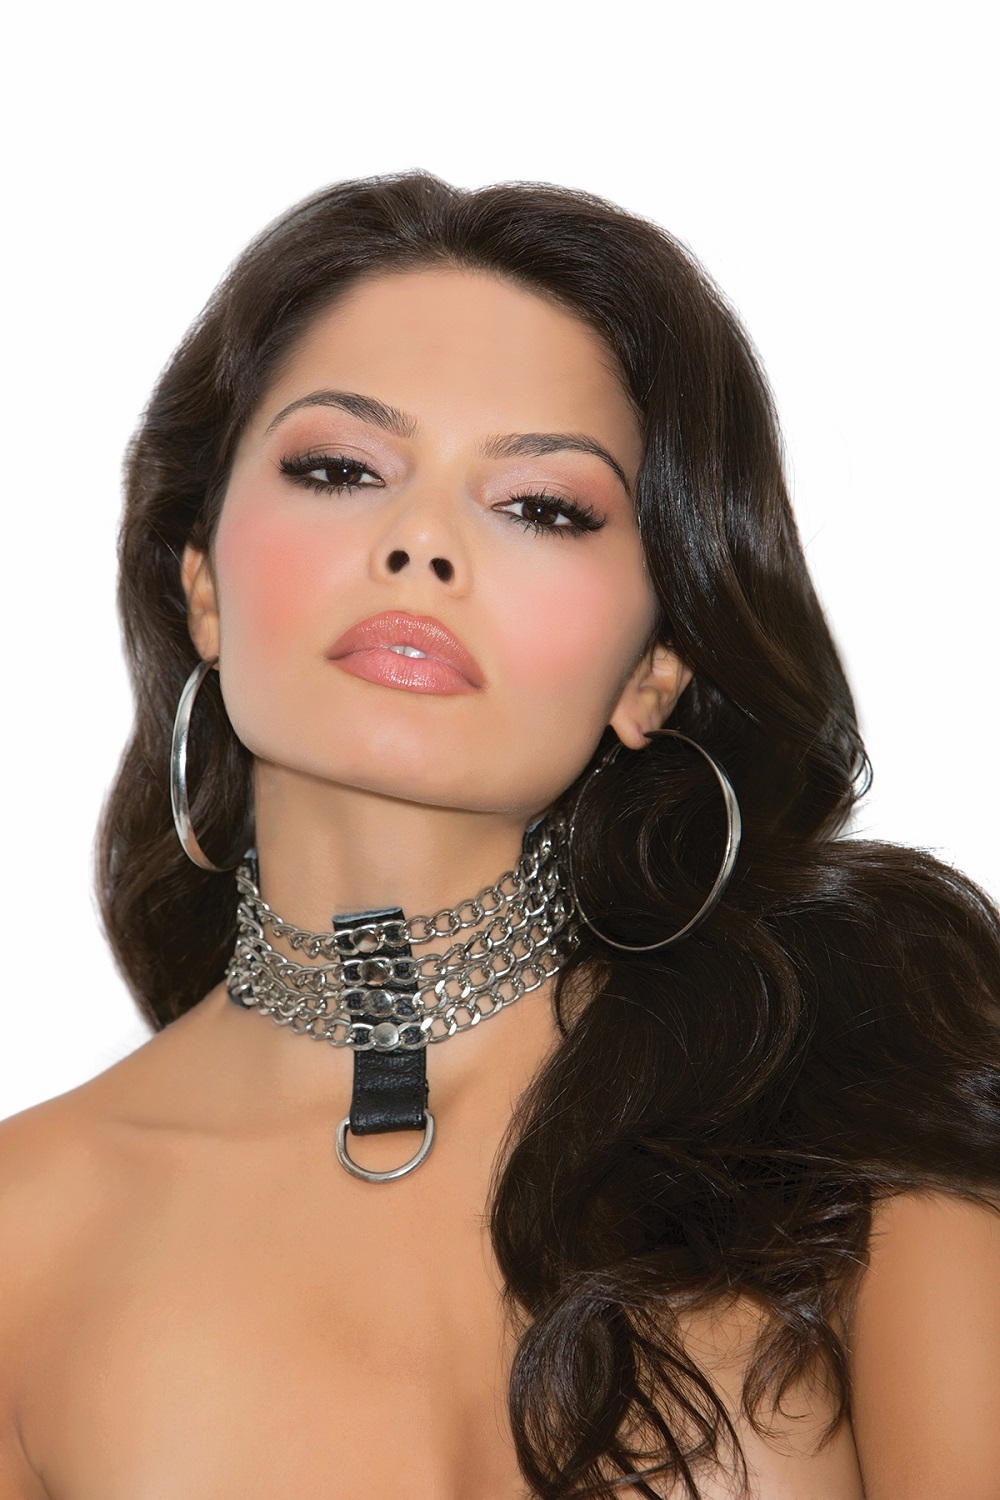 L9731 Leather and Chain Choker OS by Elegant Moments